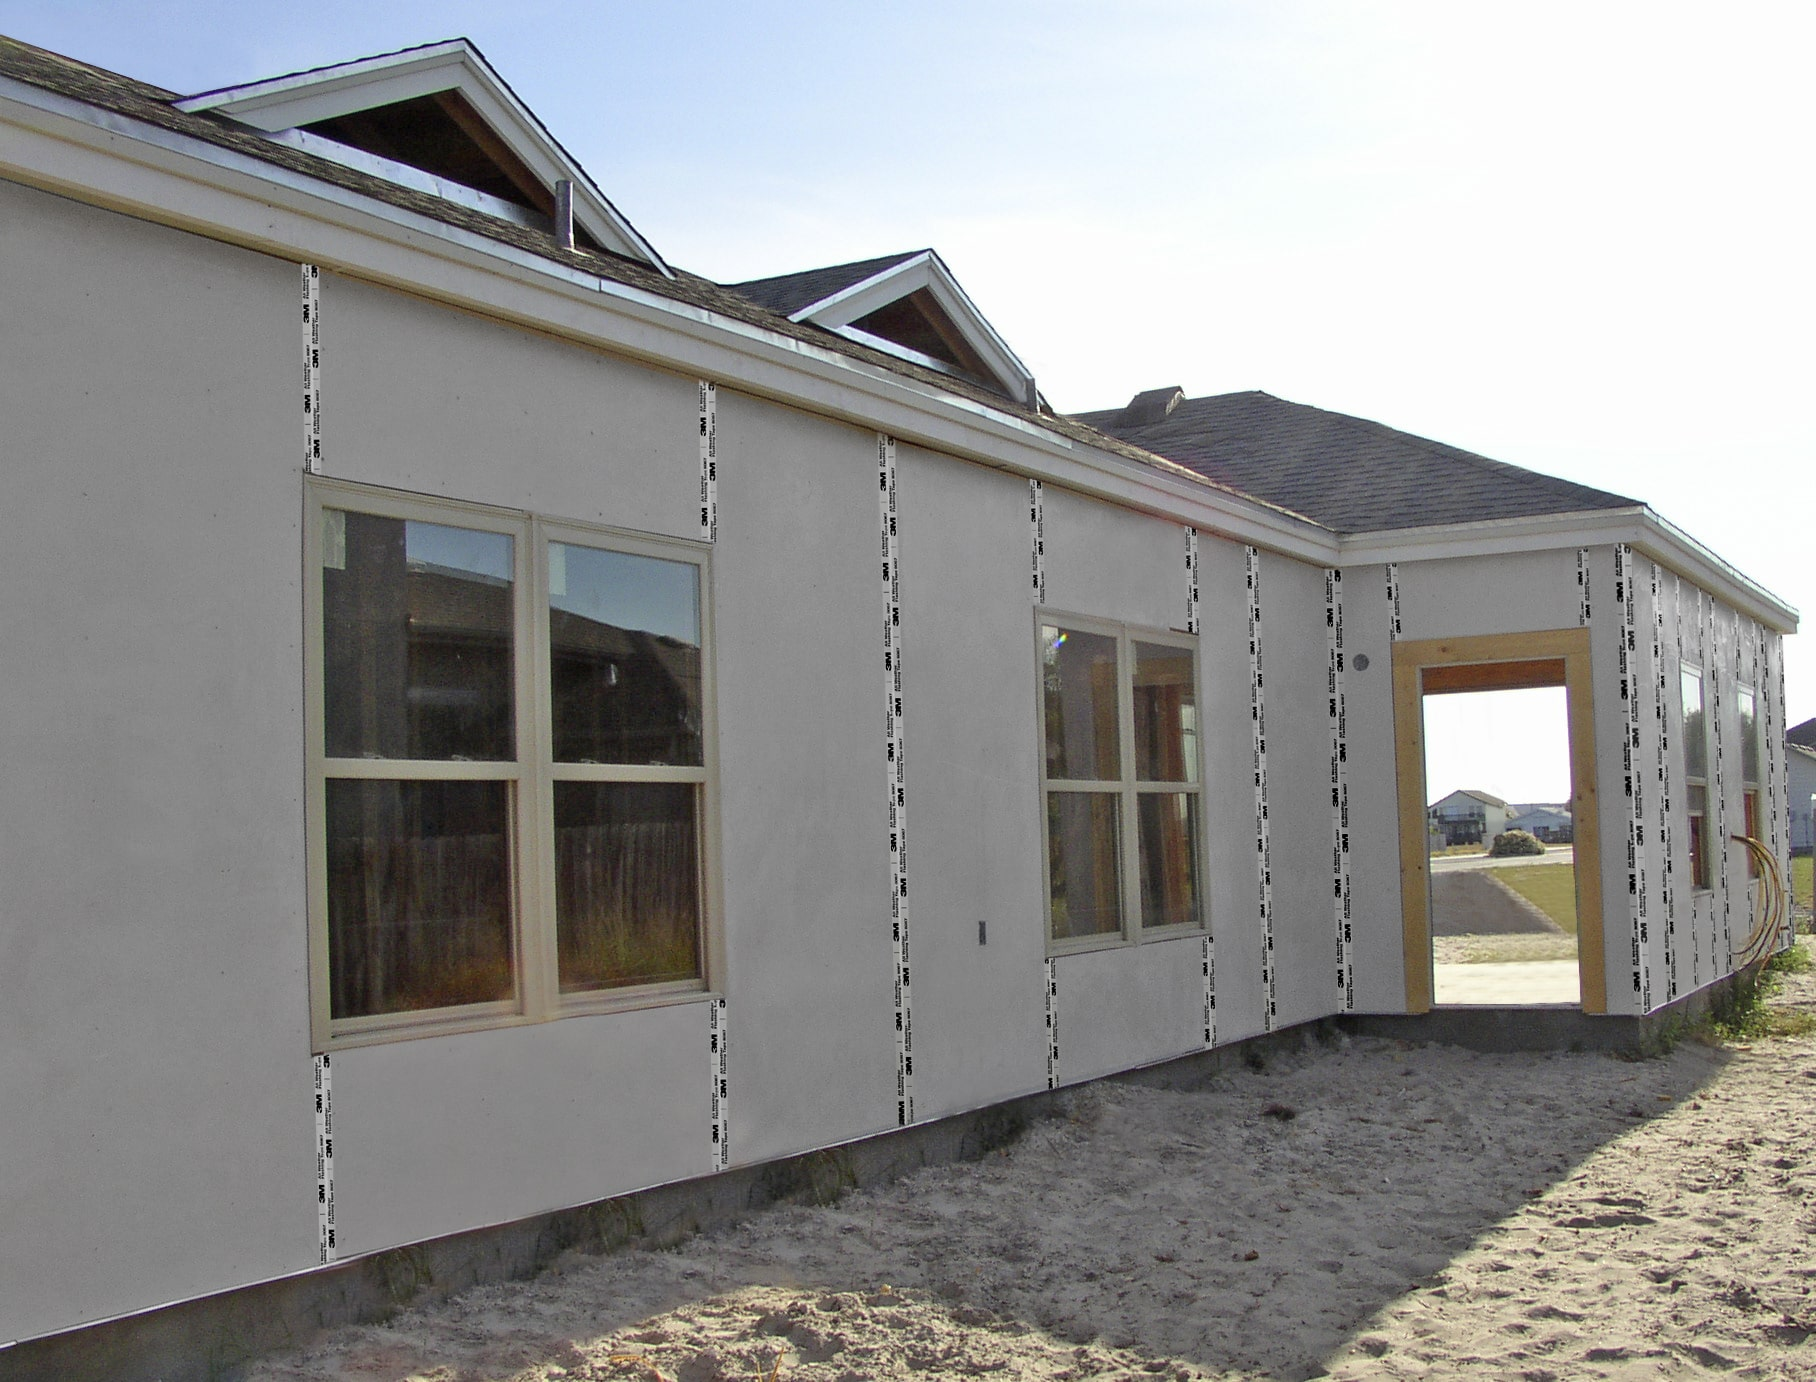 Exterior Sheathing System Improves Energy Efficiency